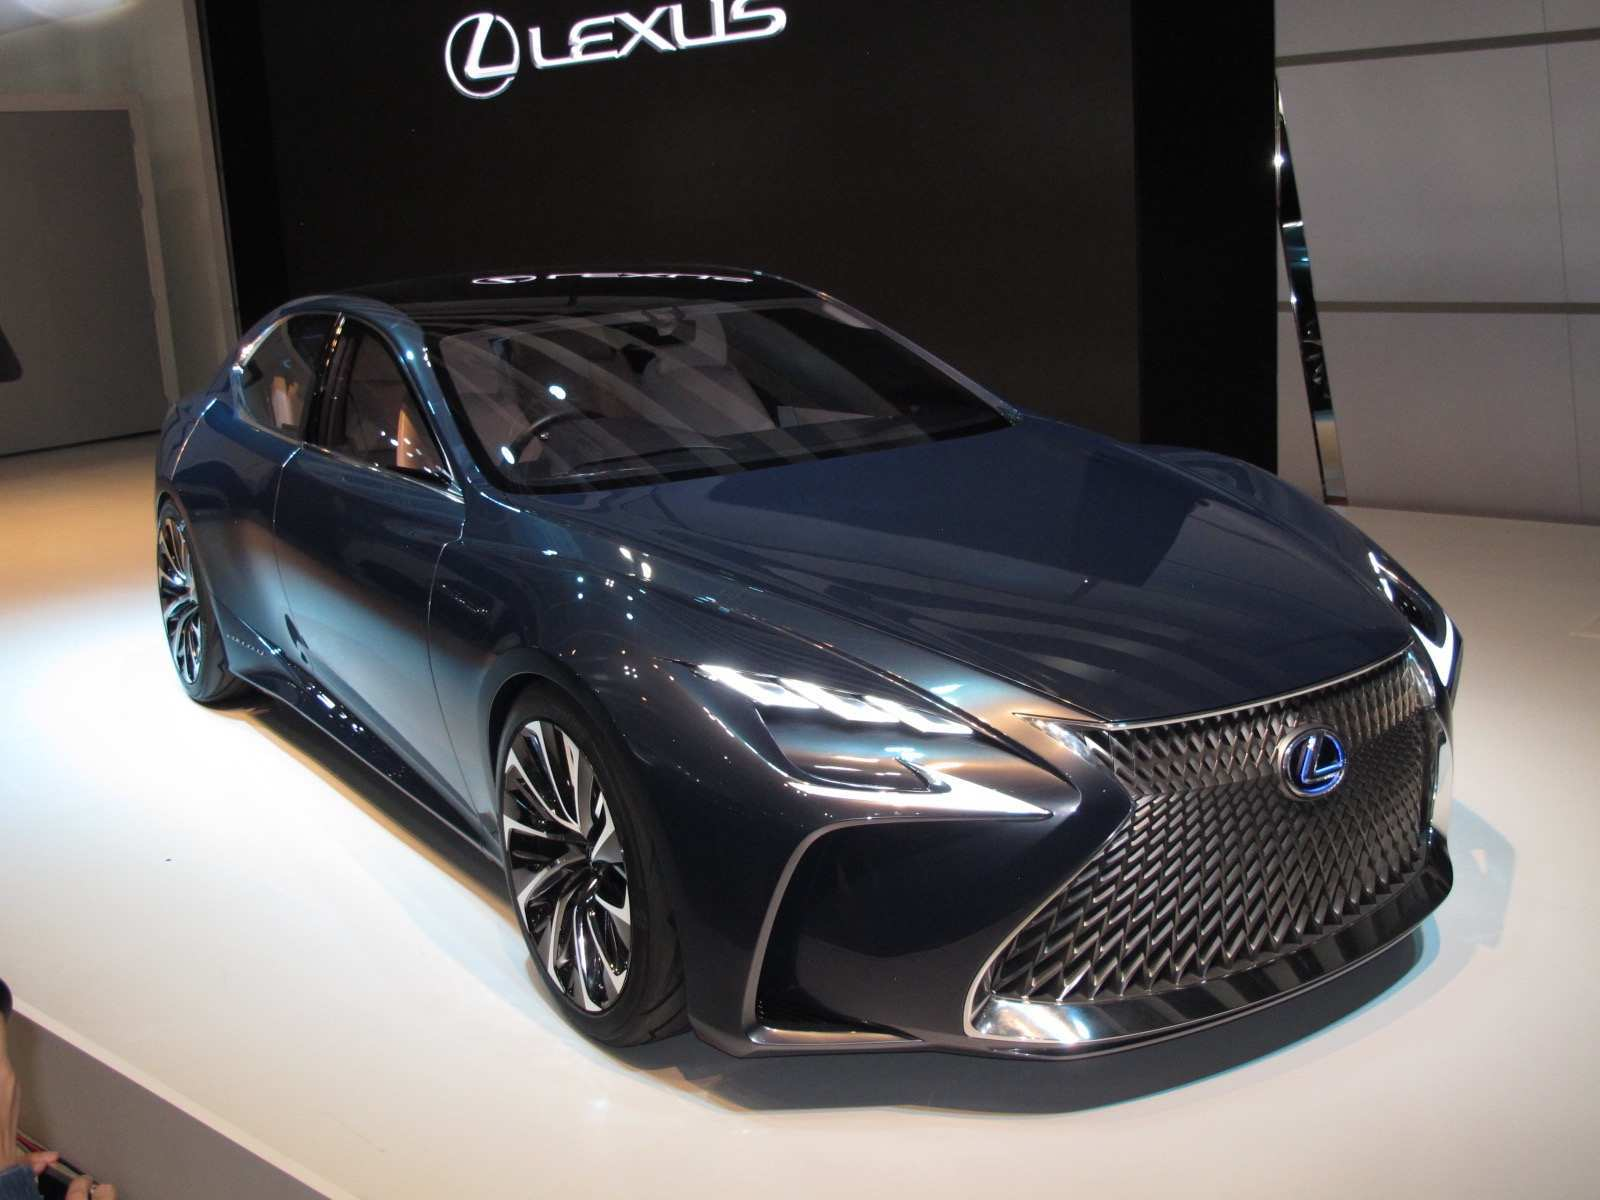 68 Gallery of Lexus 2020 New Concepts Spy Shoot with Lexus 2020 New Concepts